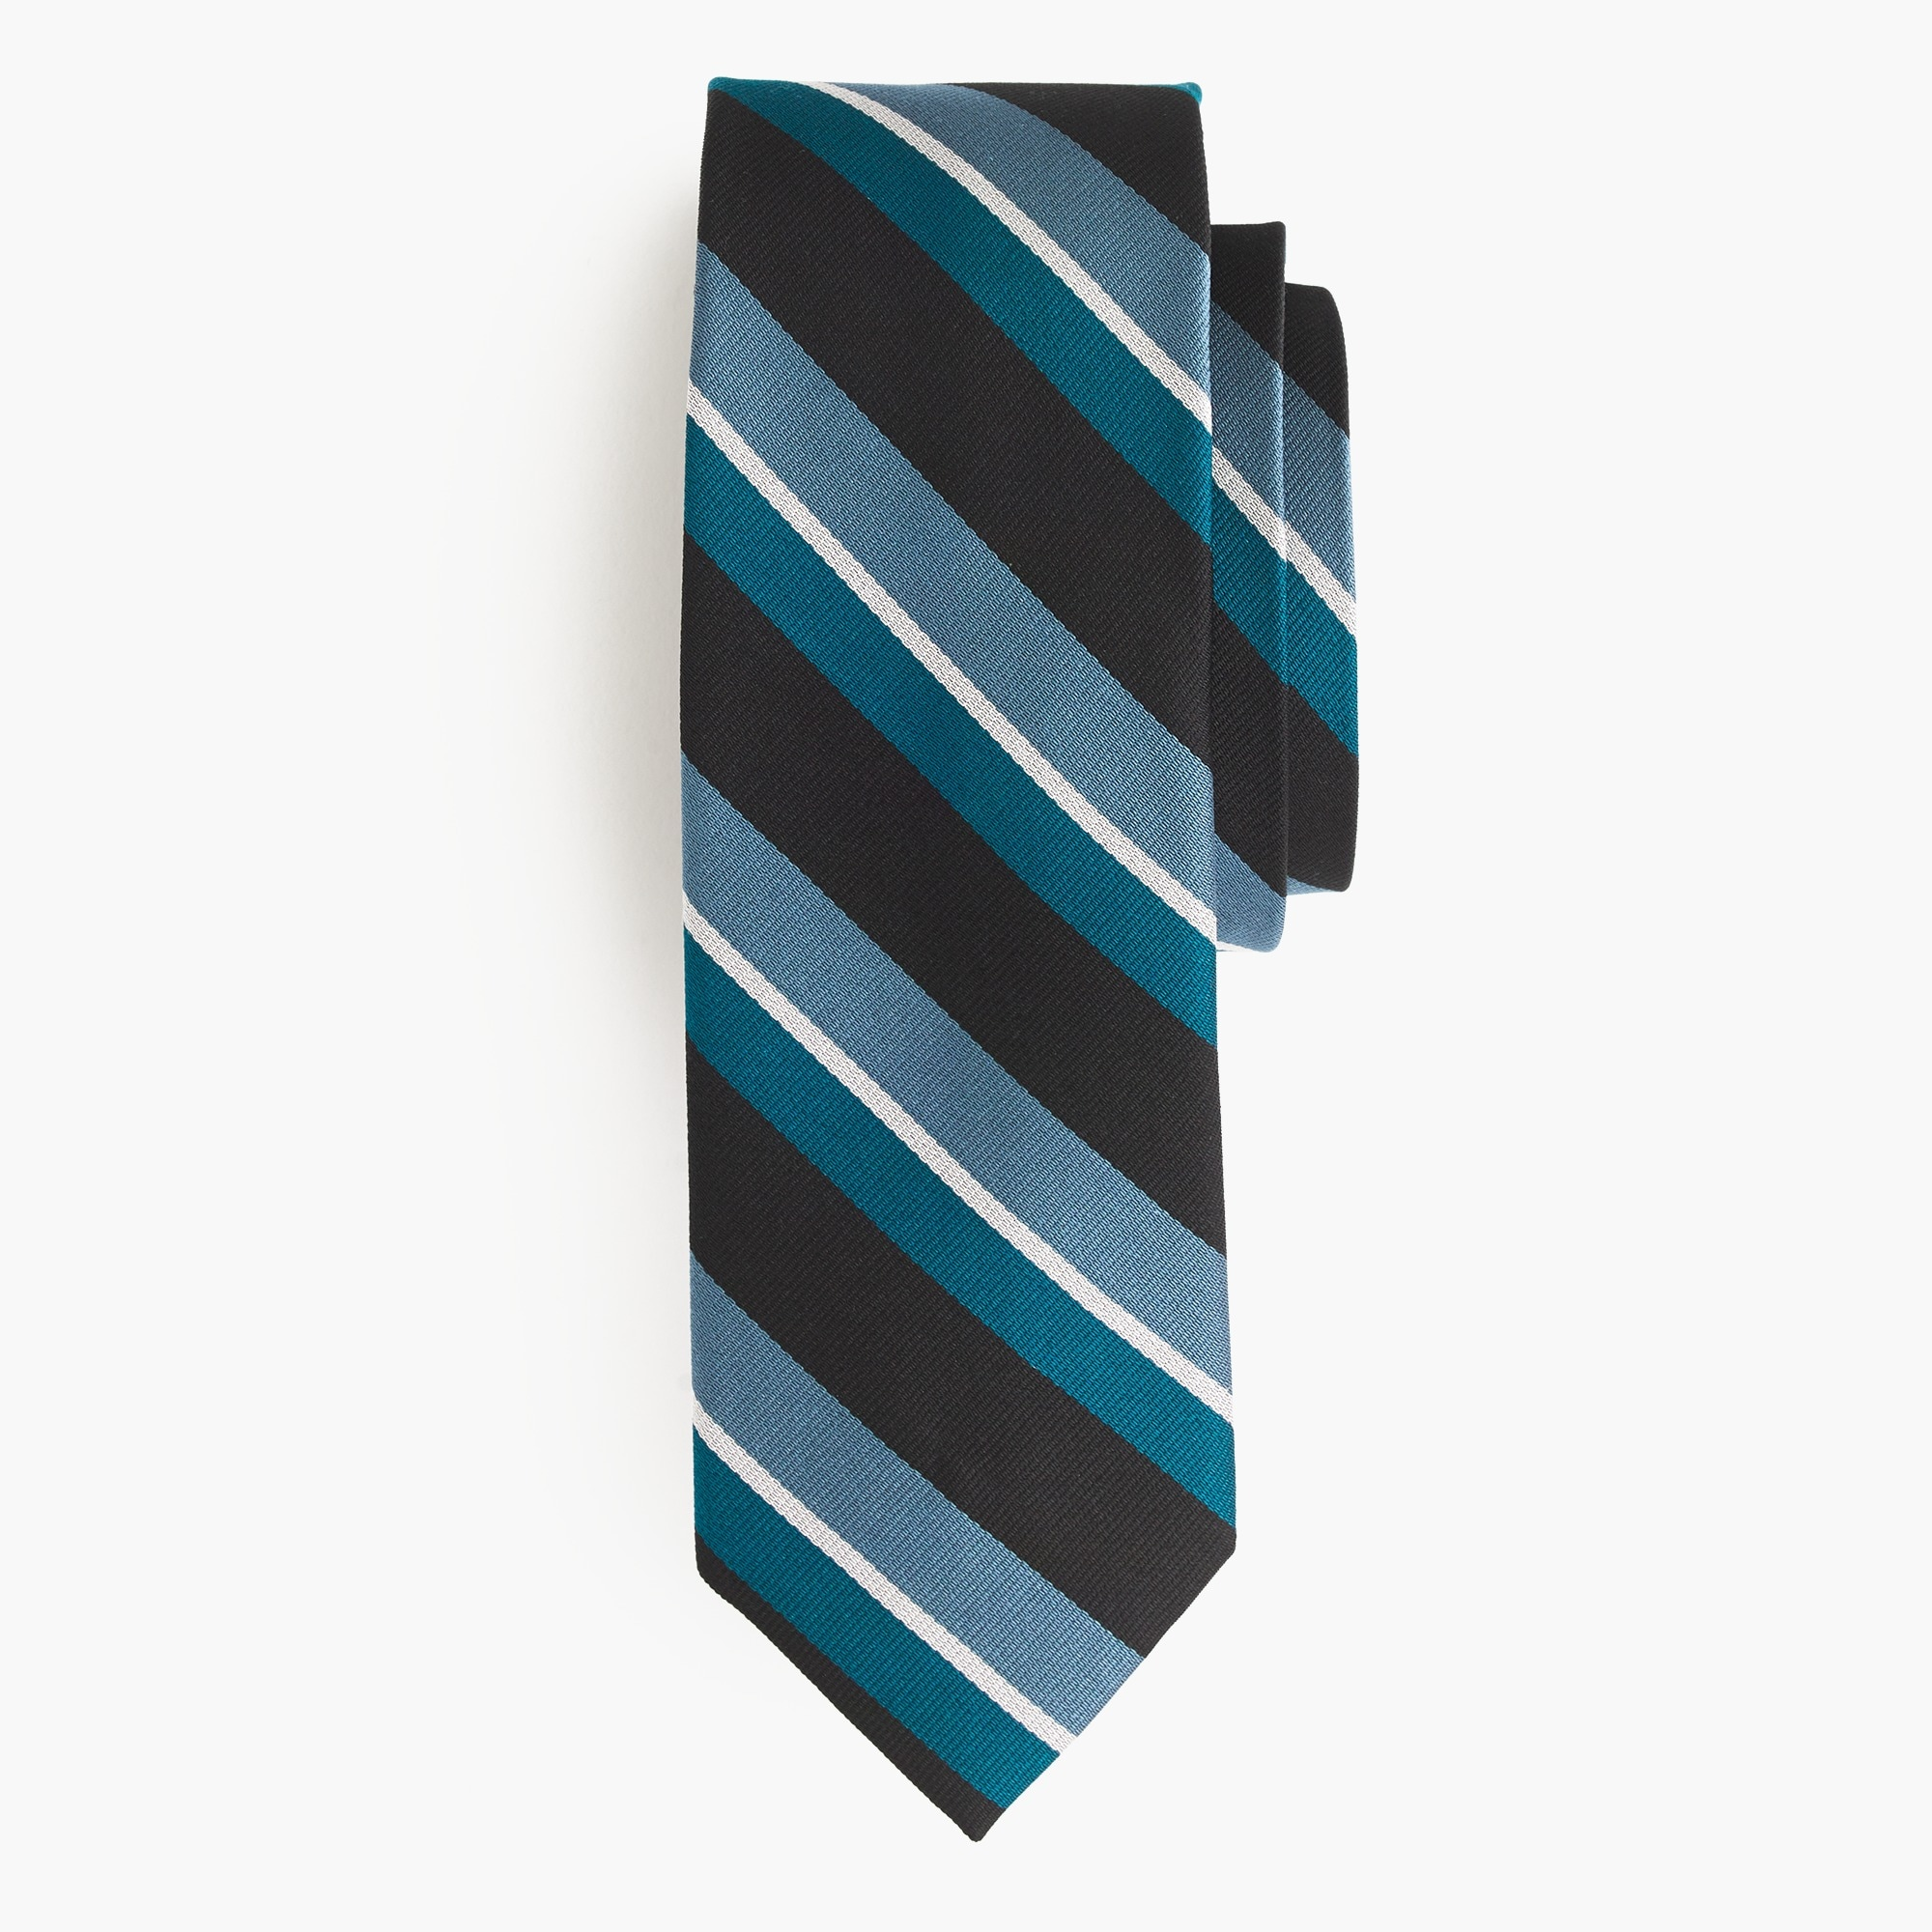 Silk repp tie in blue and black stripe men ties & pocket squares c